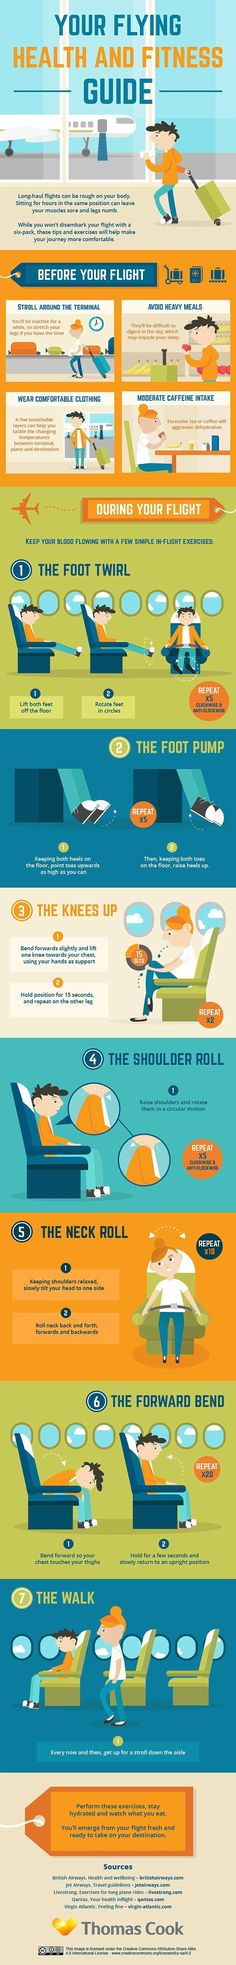 21 Travel Hacks You Should Know This Holiday Season TRAVEL HEALTH TIPS | How To Stay Healthy on Long Haul Flights - Going on holiday to an exciting destination on the other side of the world is supposed to be a thrilling and stress-free experience, but many travellers leave the plane after a long haul flight feeling sluggish, sore and much worse for wear. Read more on the blog at www.backtobuckley...